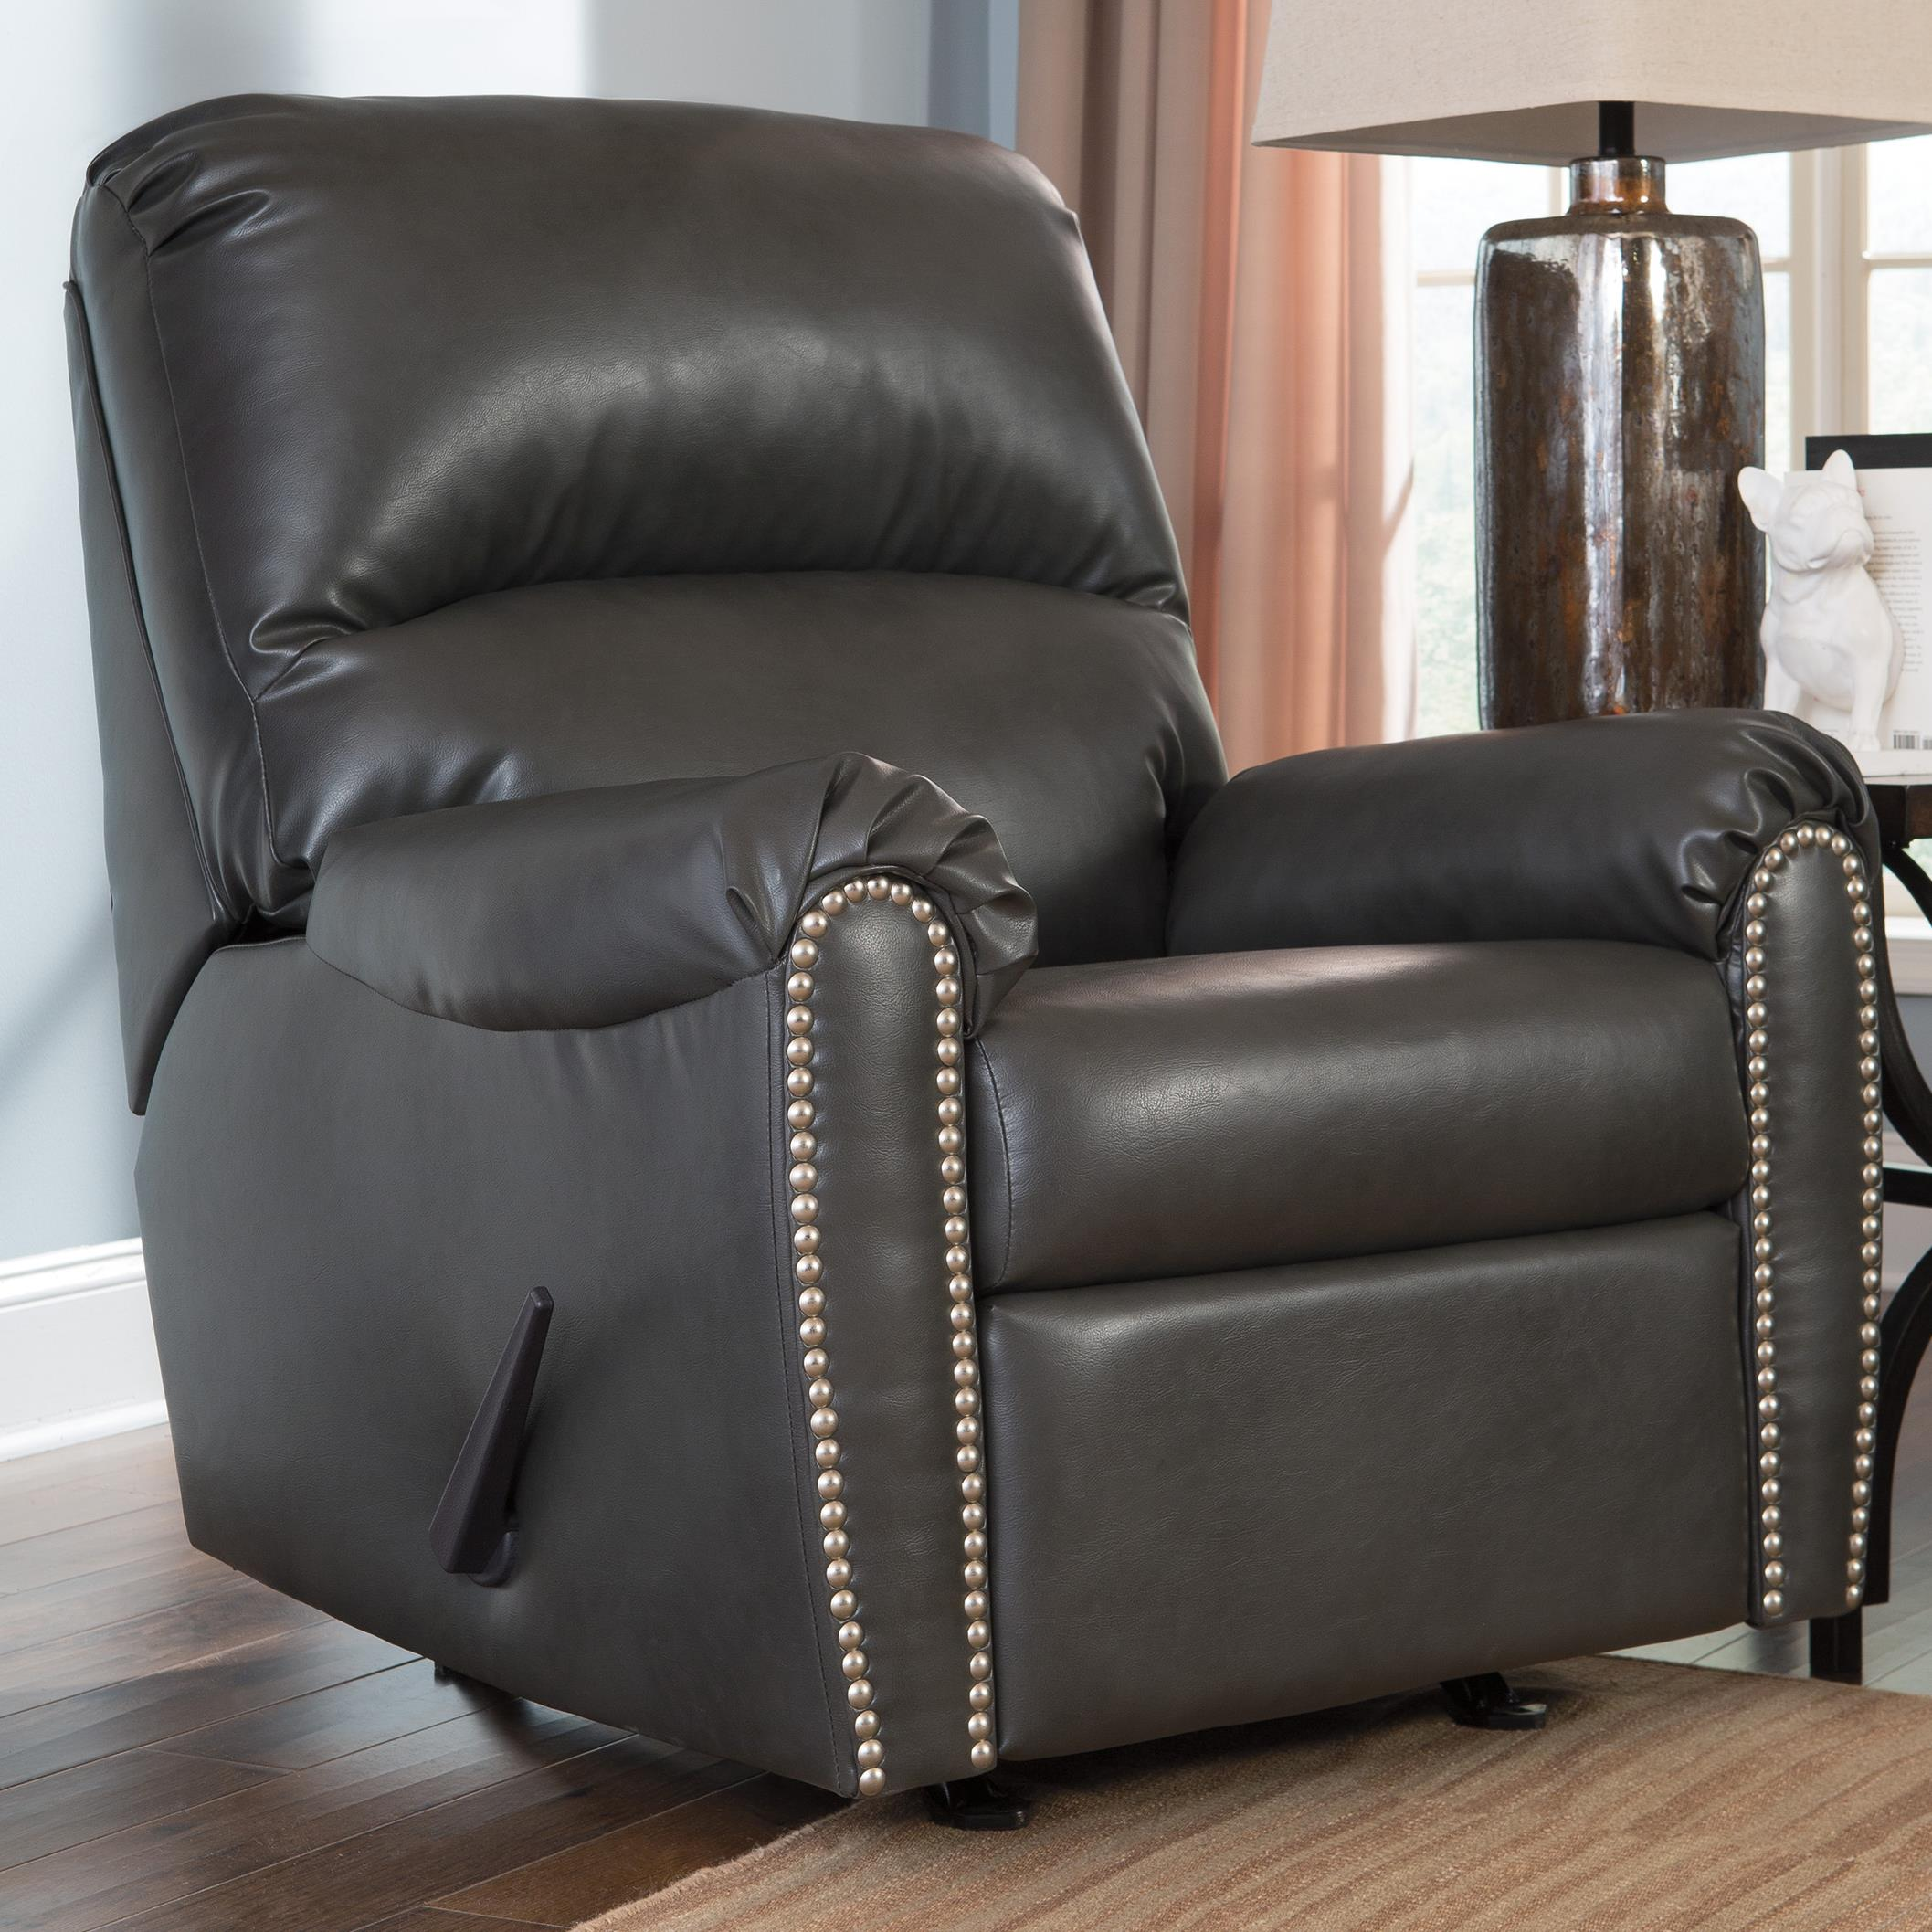 signature design by ashley lottie durablend rocker recliner item number - Leather Rocker Recliner